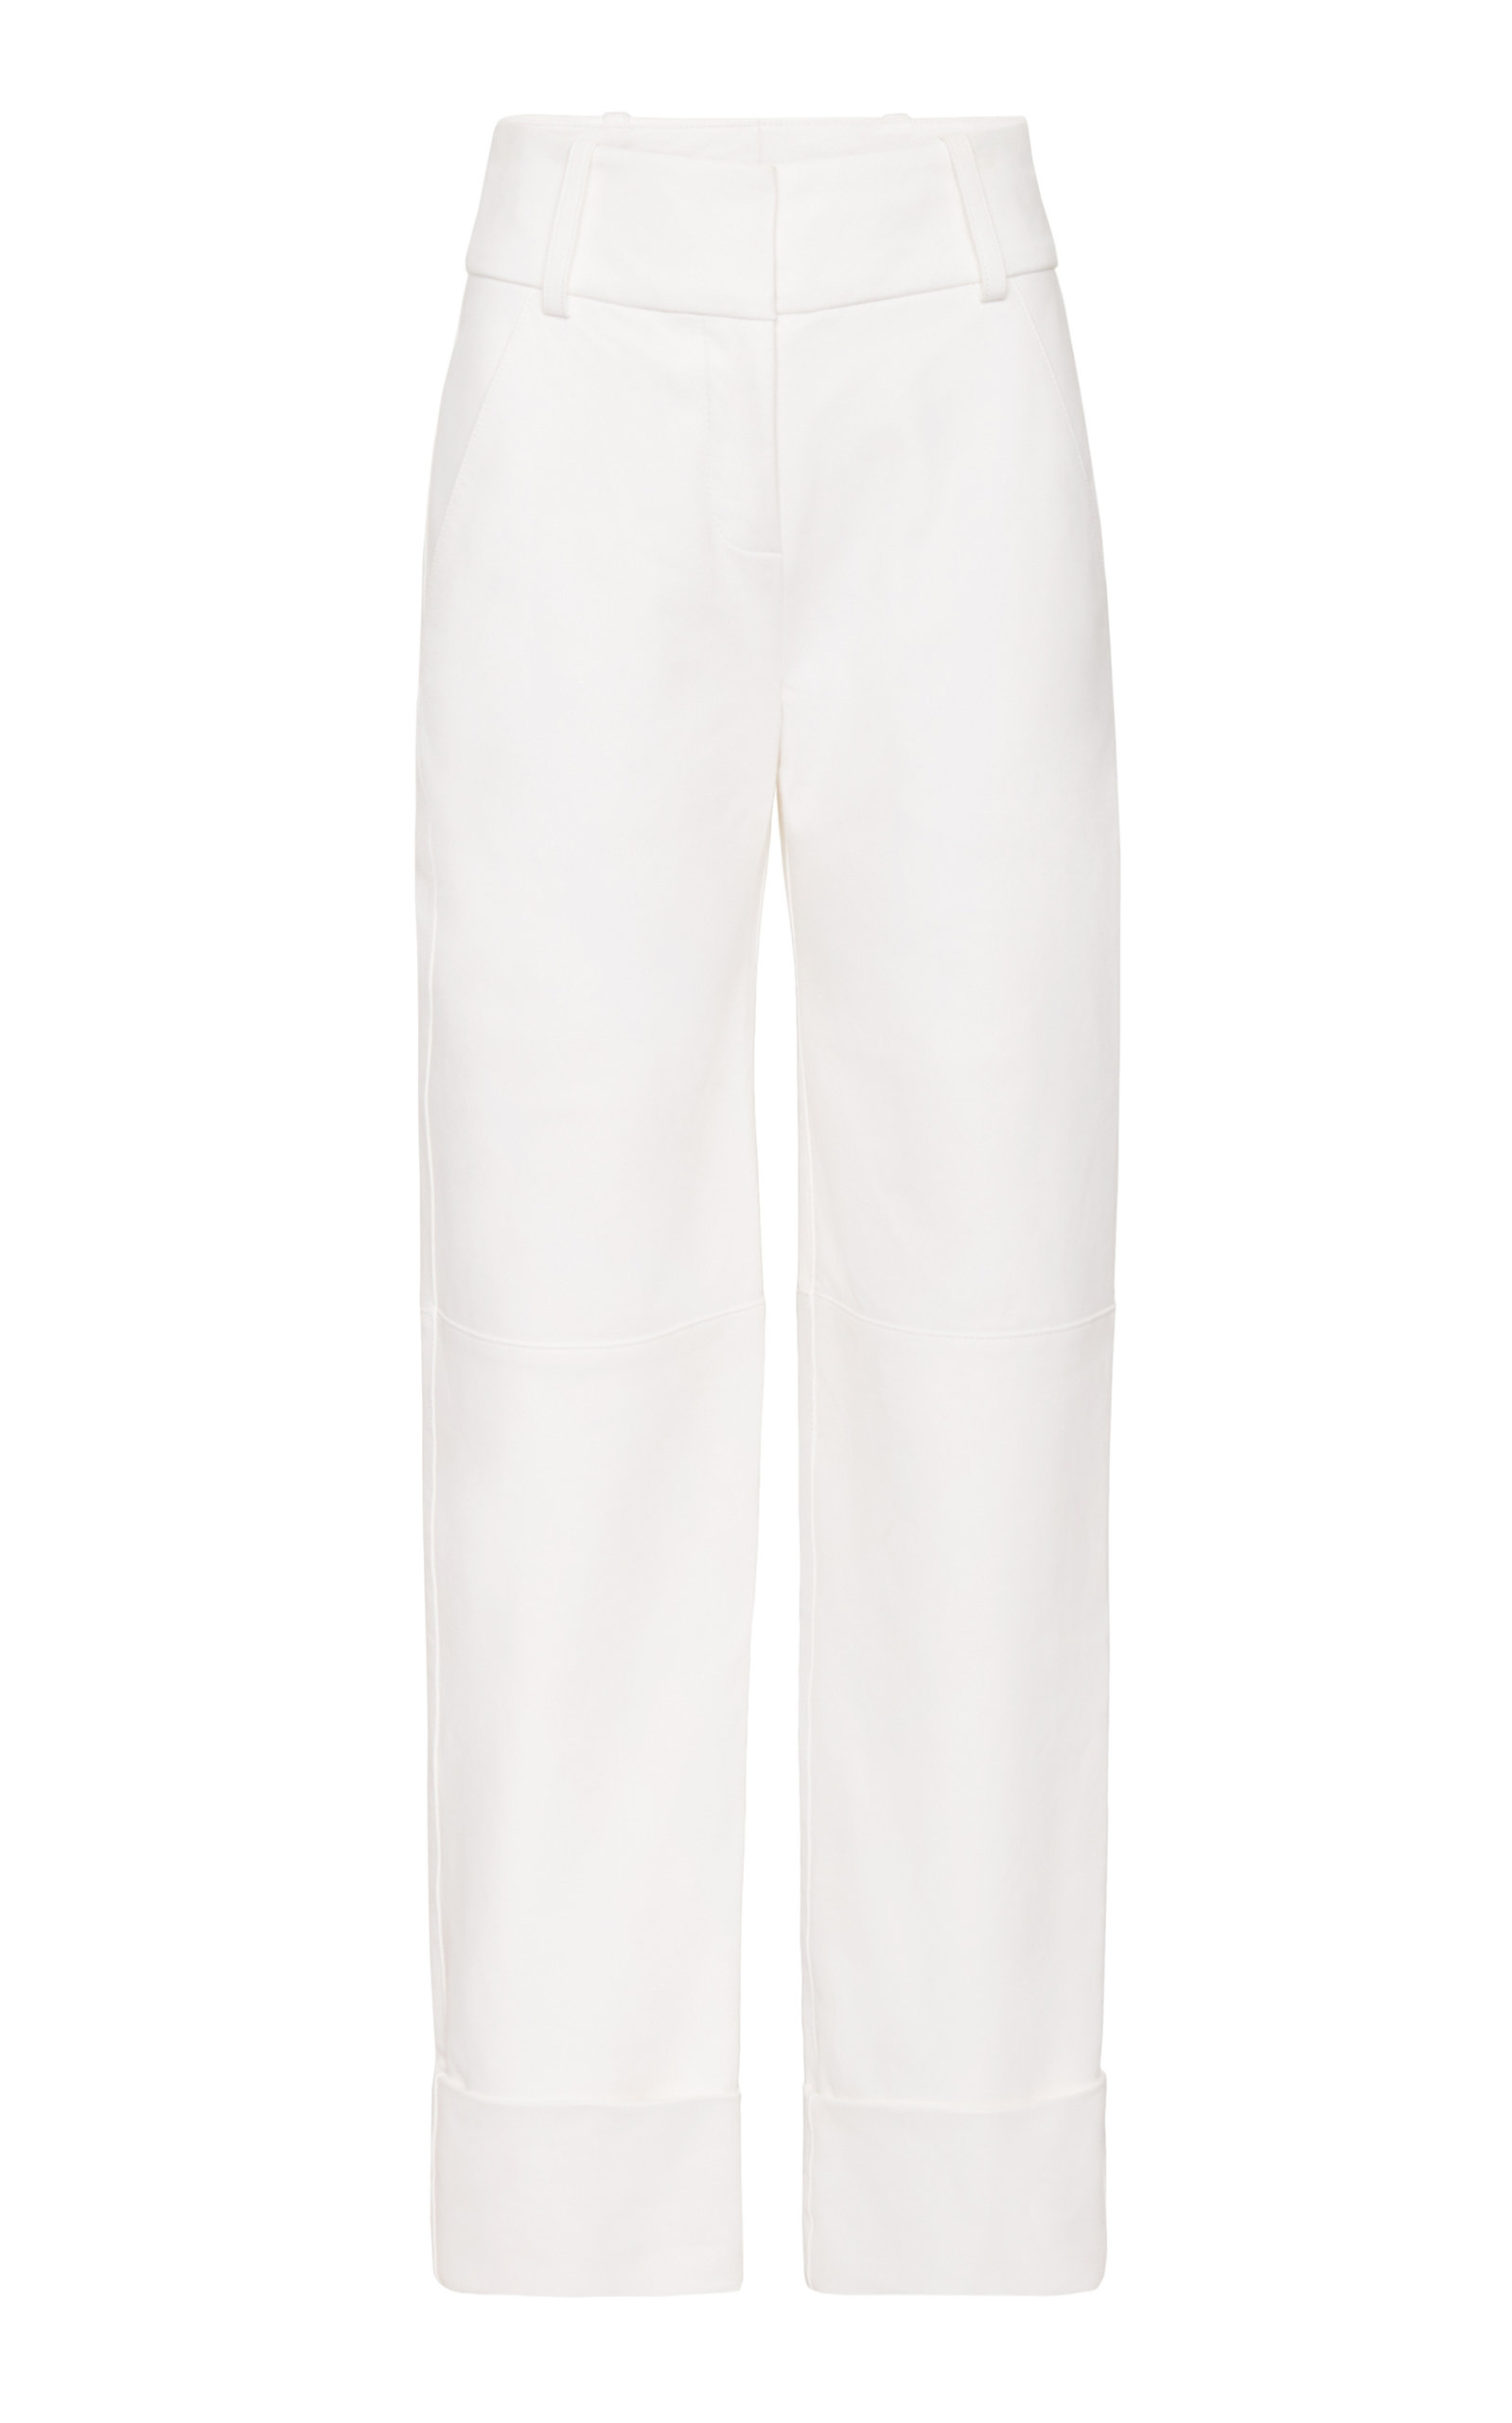 MARINA MOSCONE PAINTER'S TAILORED LEATHER TROUSER